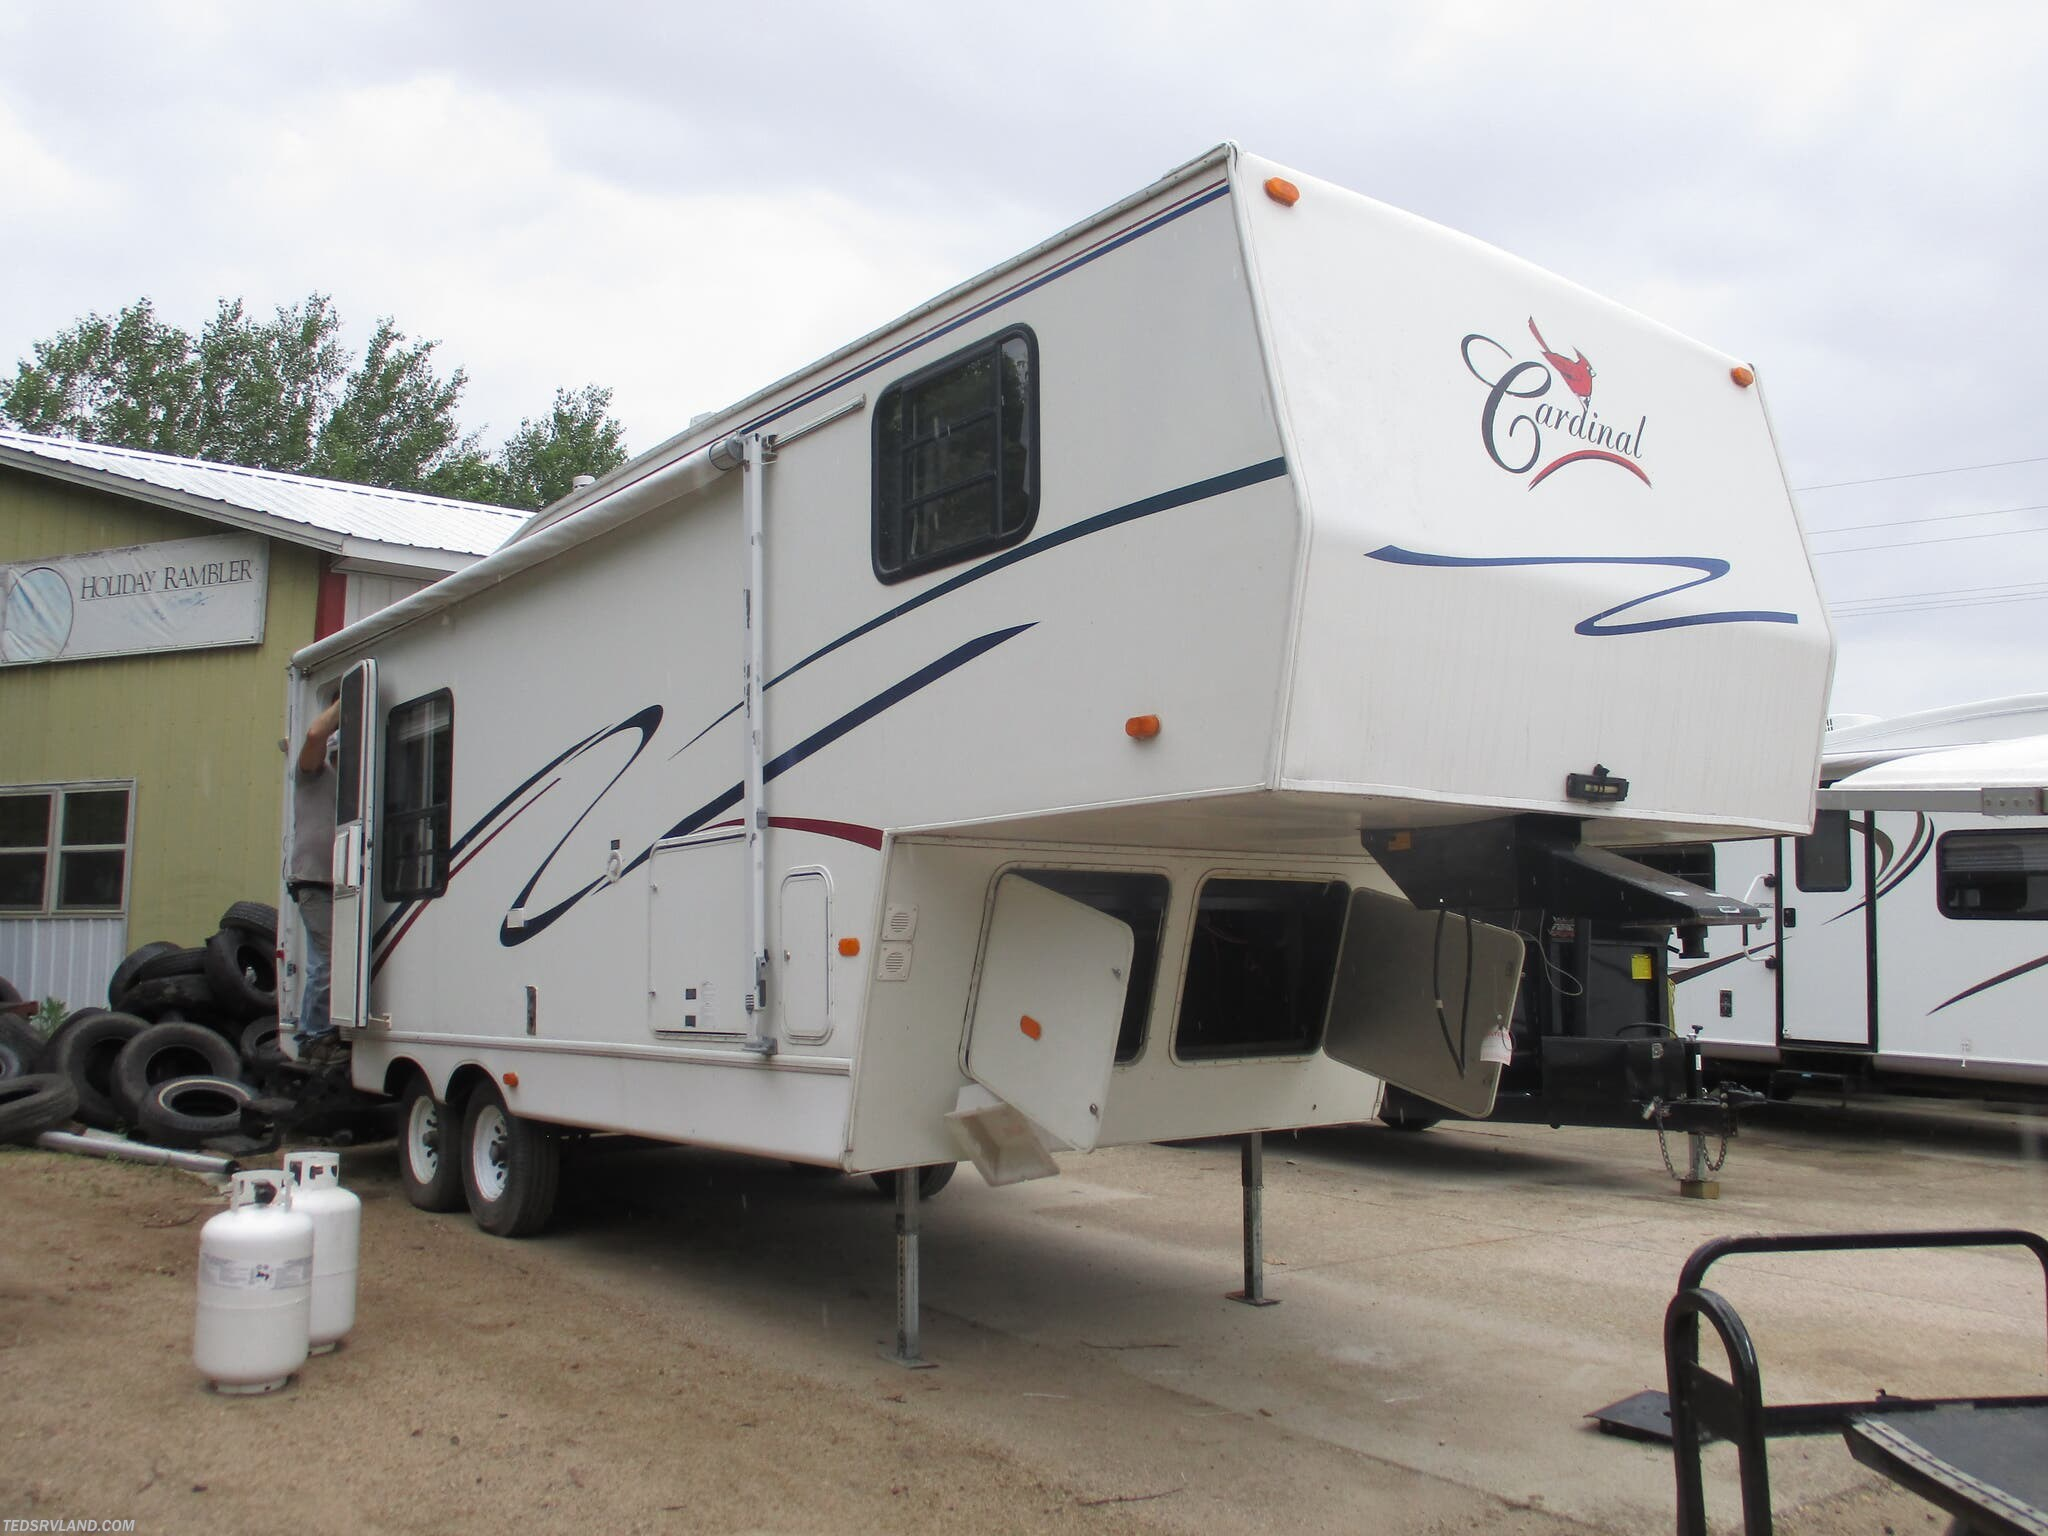 1998 Forest River Cardinal 25rks Rv For Sale In Paynesville Mn 56362 Wg071143 Rvusa Com Classifieds